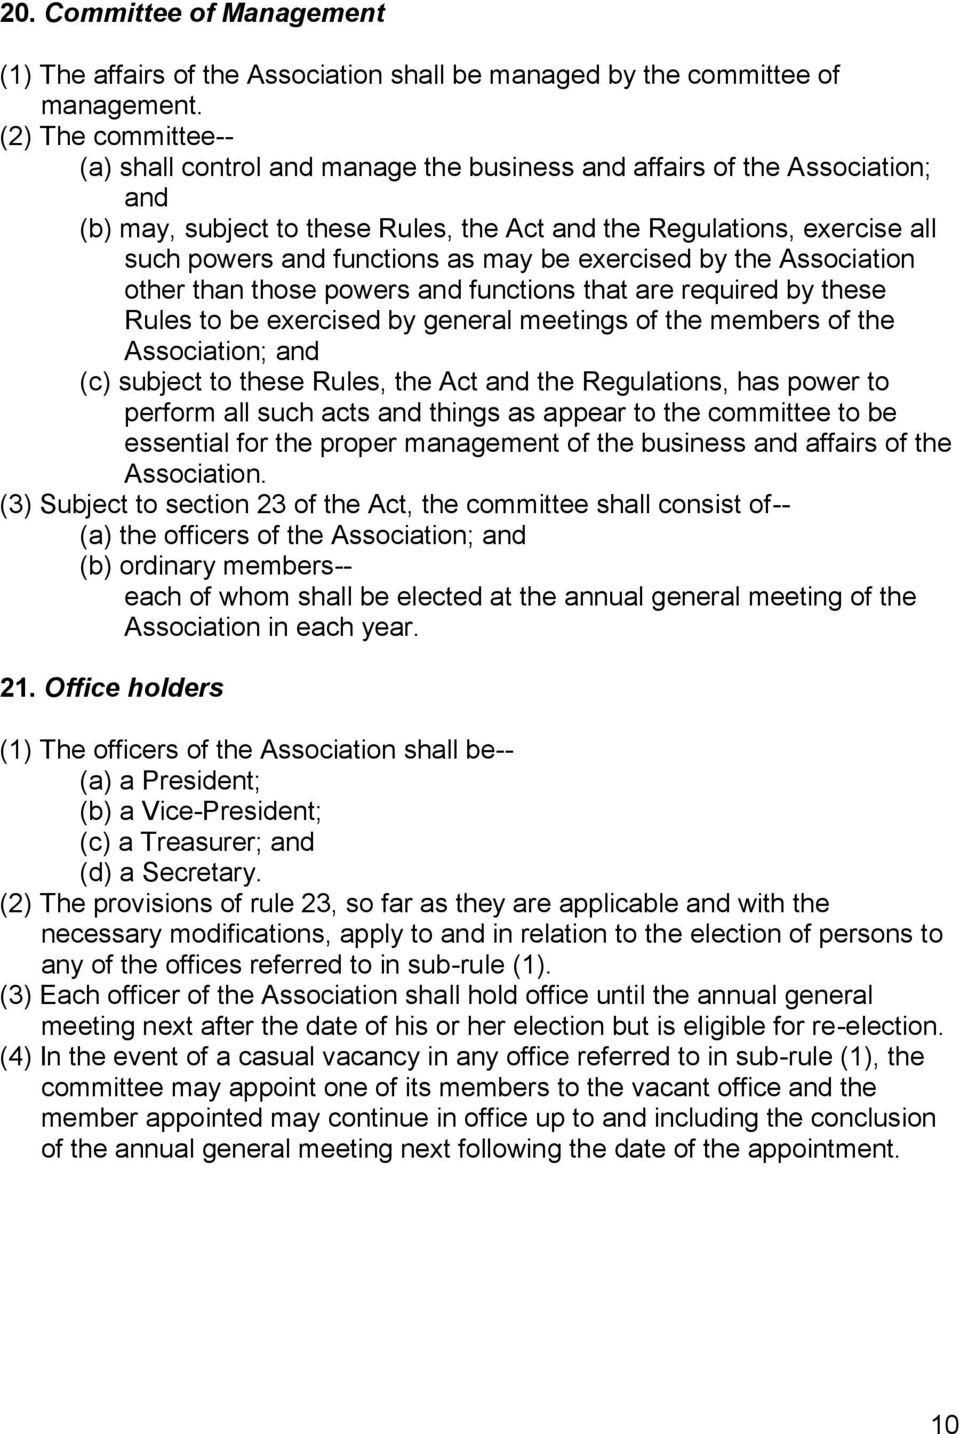 as may be exercised by the Association other than those powers and functions that are required by these Rules to be exercised by general meetings of the members of the Association; and (c) subject to